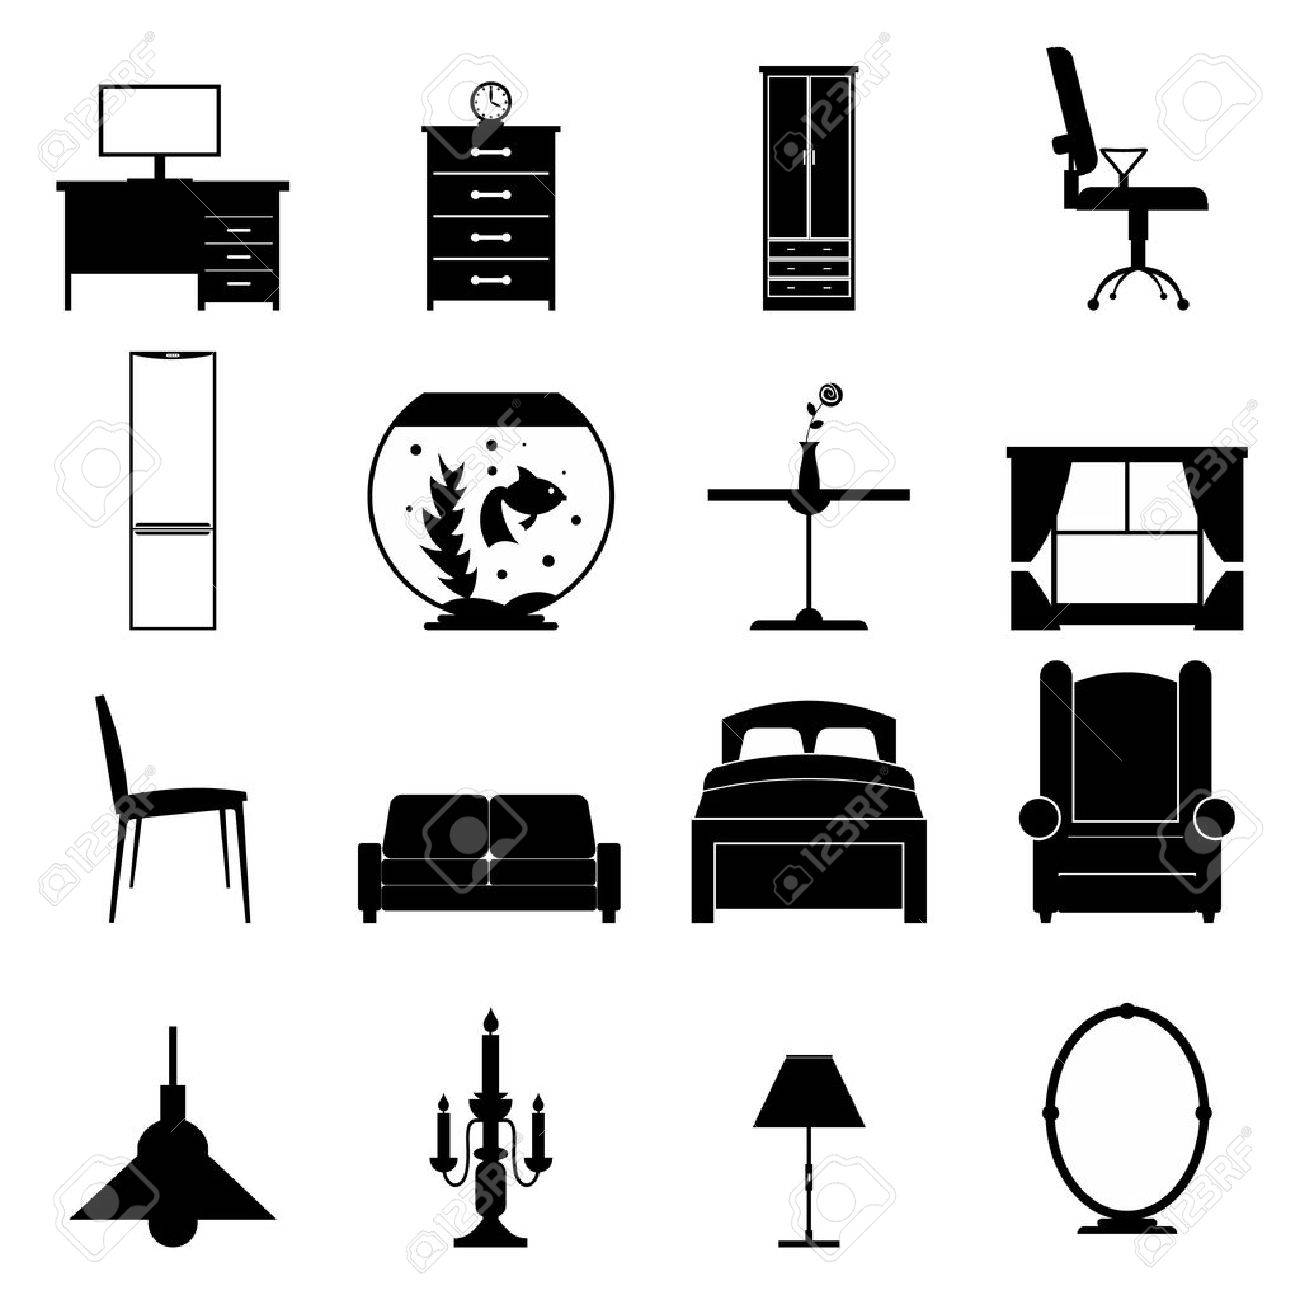 Furniture black icons set. Simple icons isolated on a white - 48327413